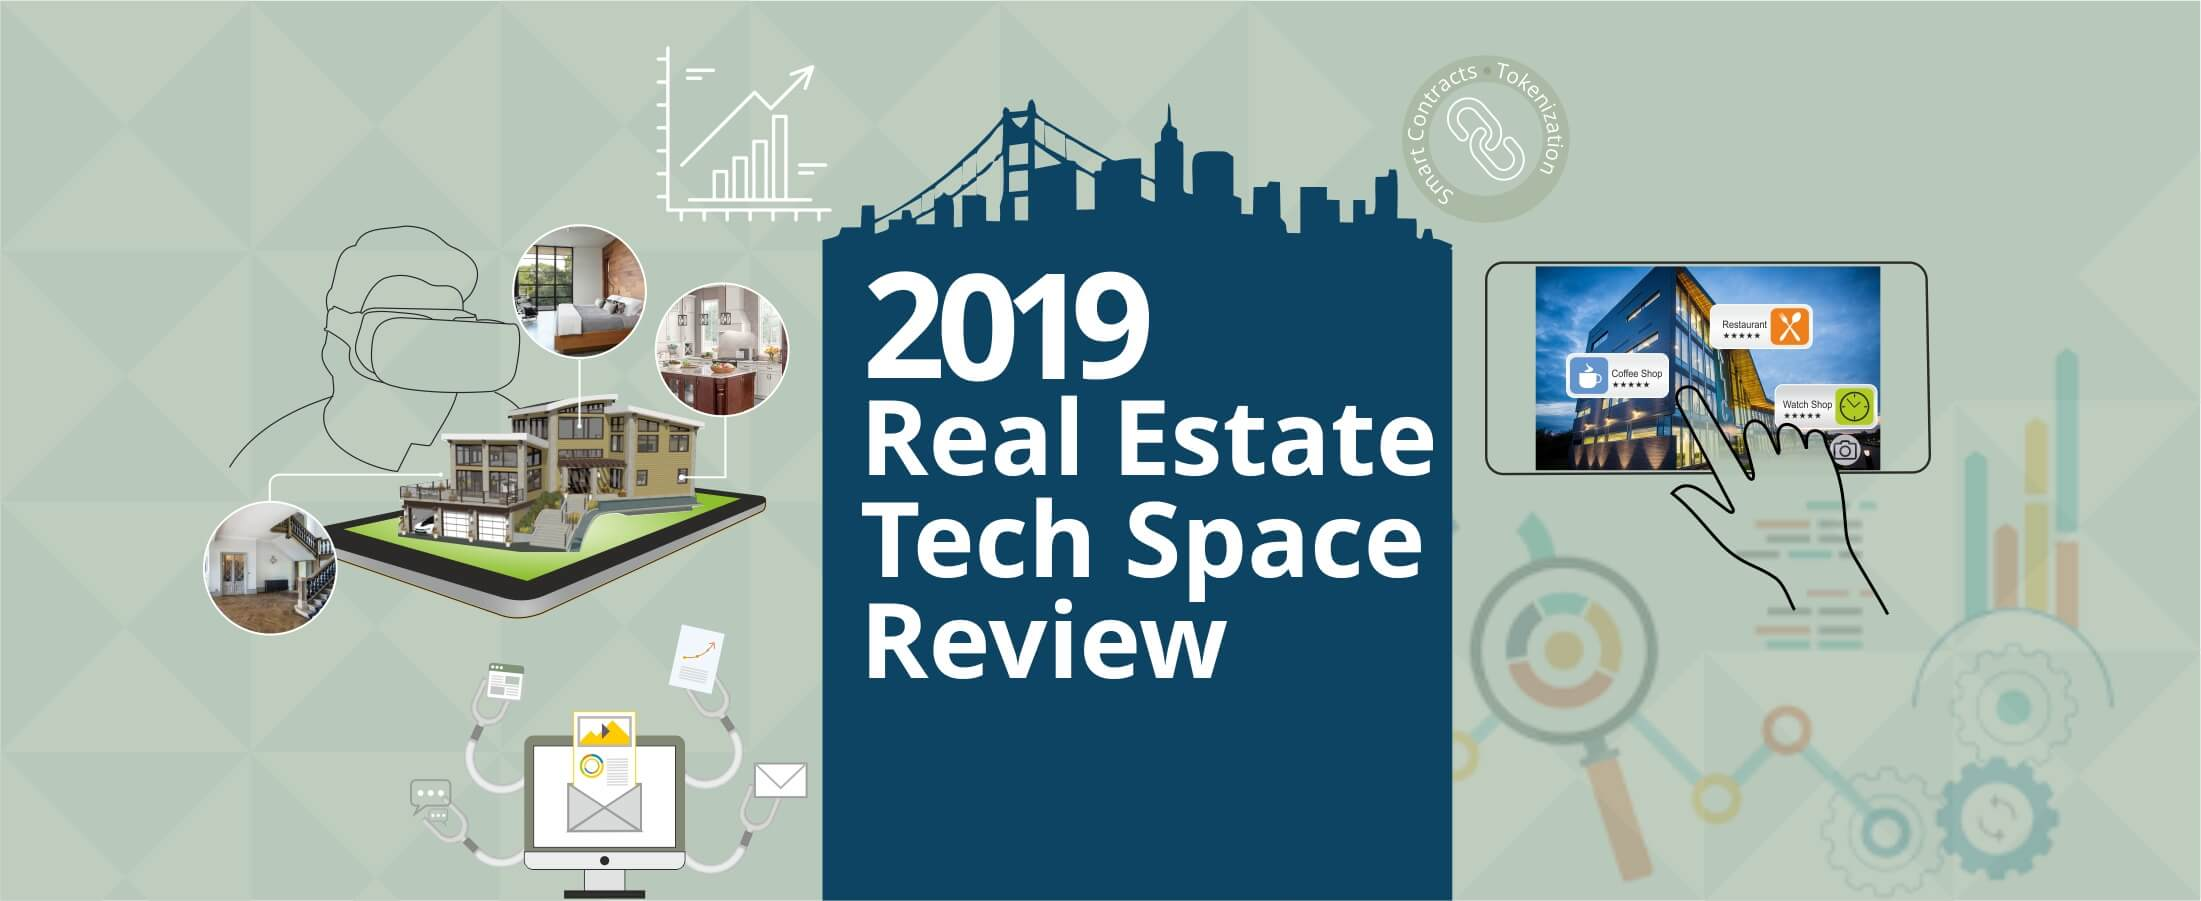 Real Estate Tech Space Review 2019